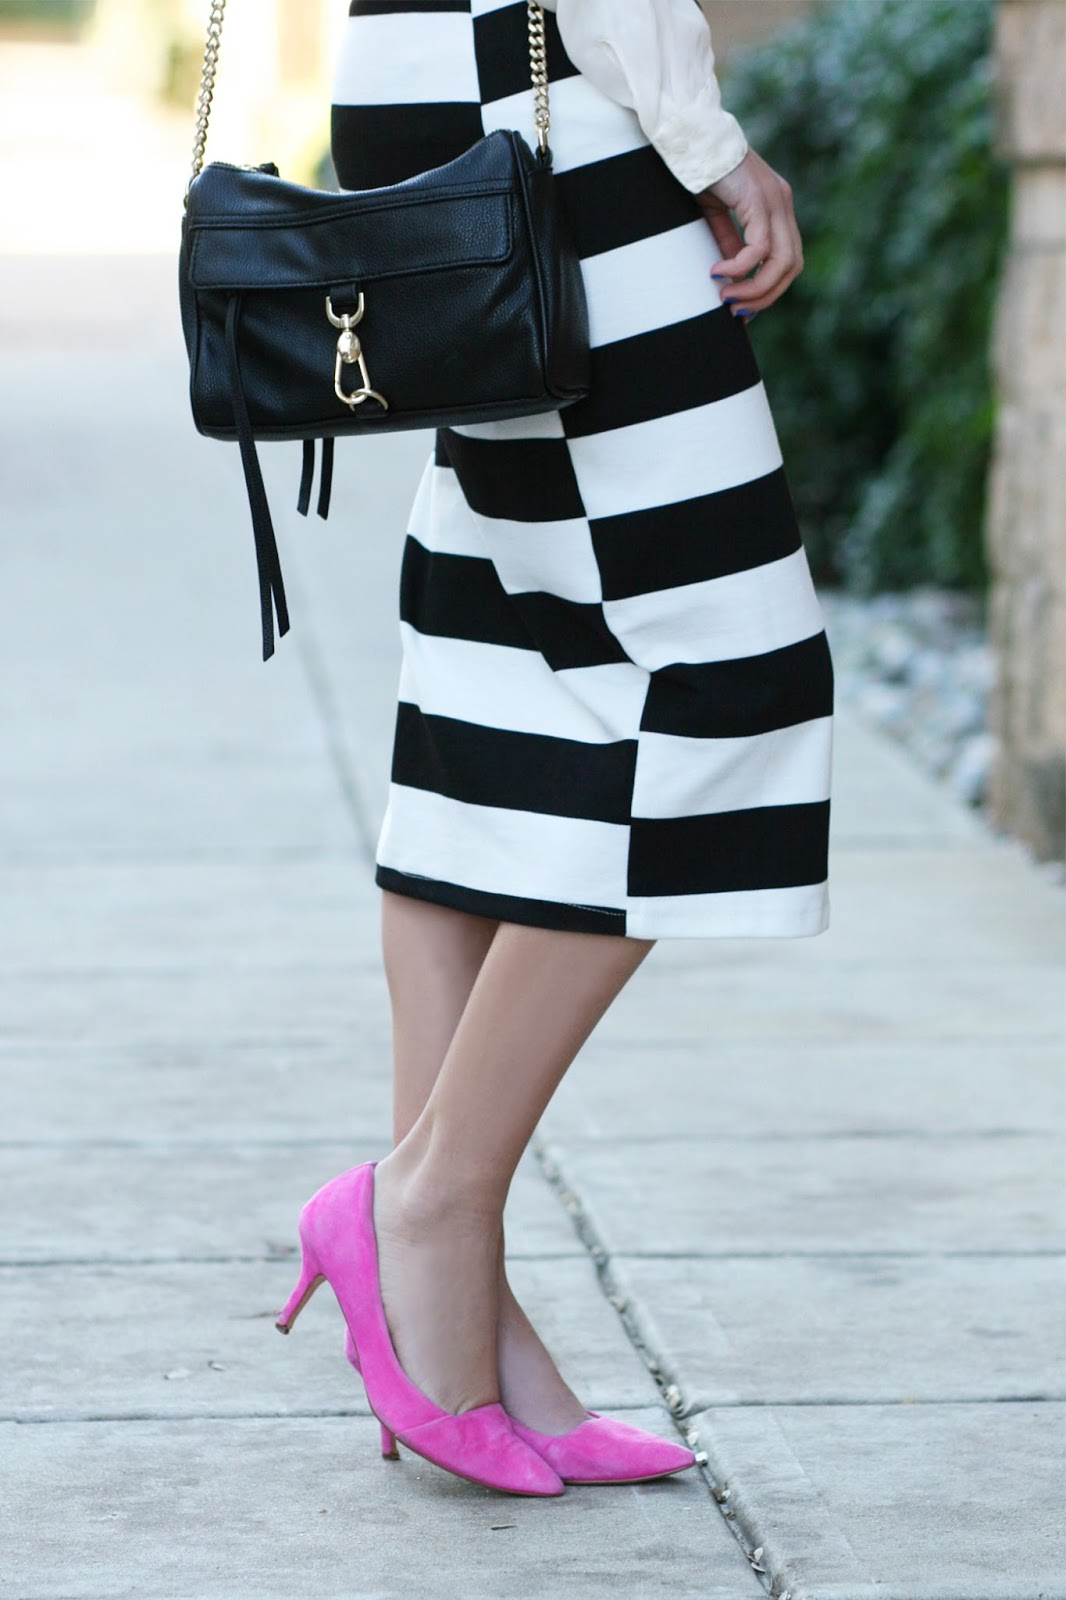 Black-and-white-midi-dress-street-style-with-cross-body-shoulder-bag